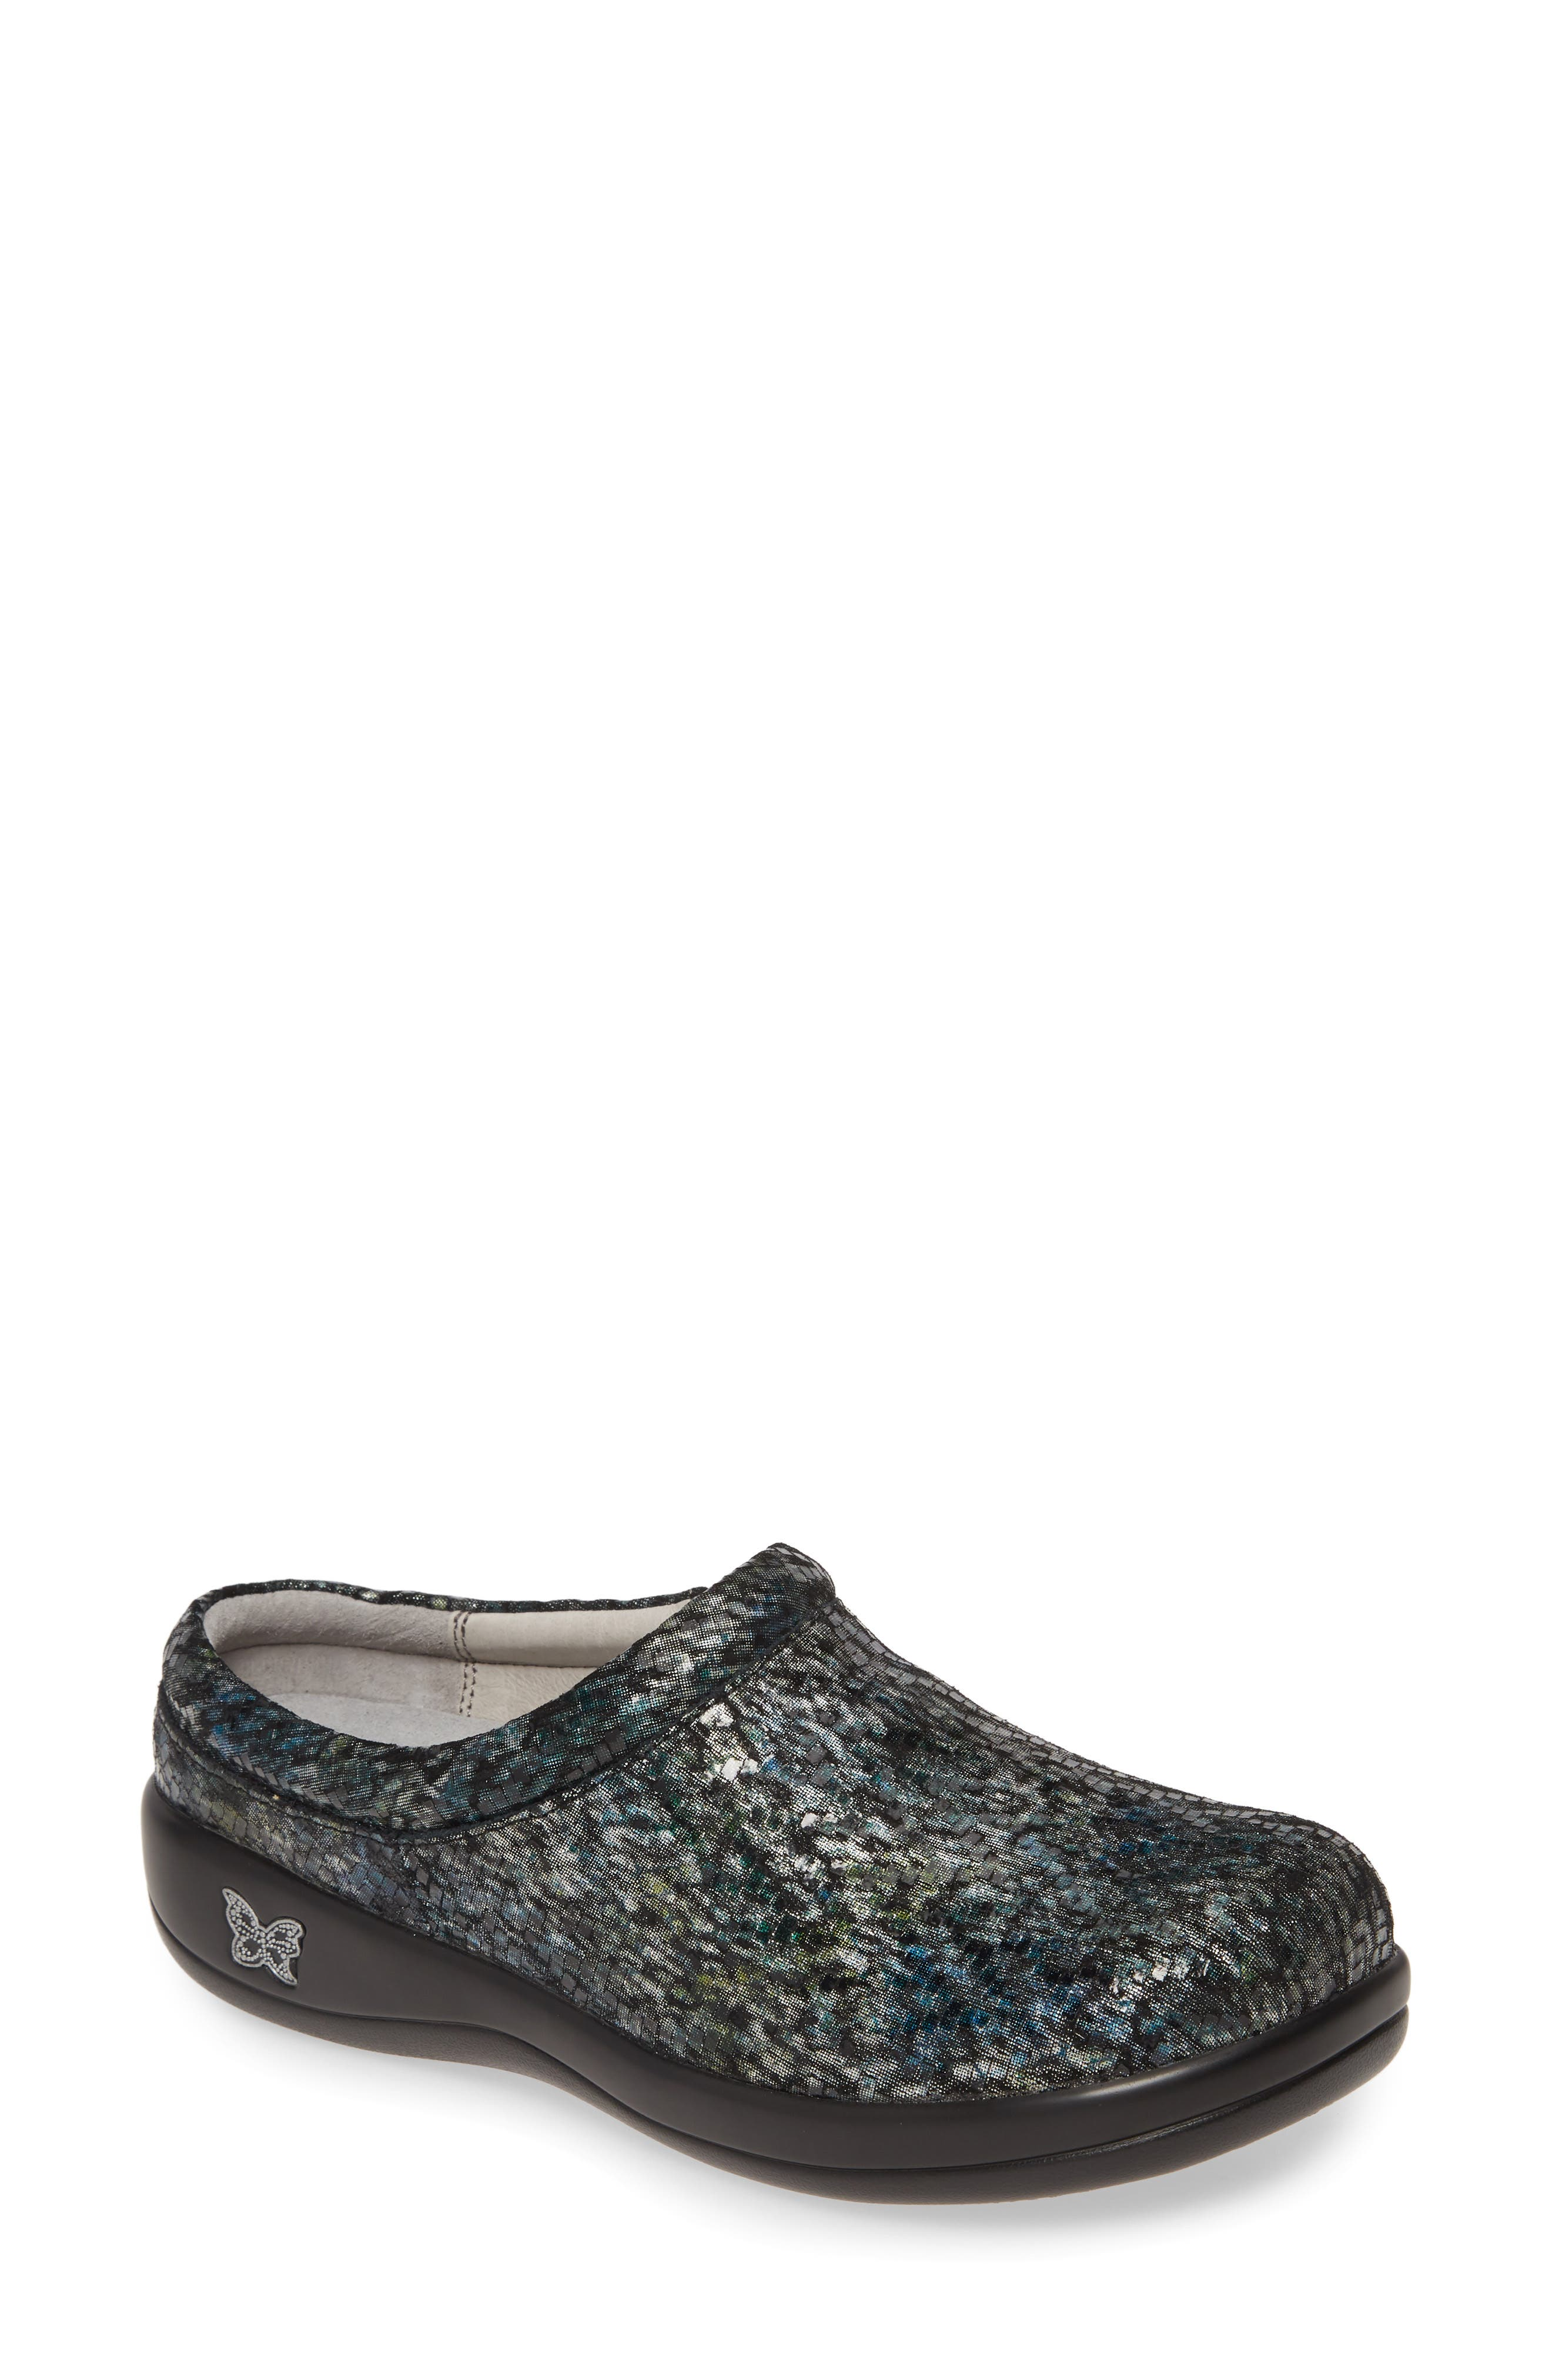 A lightweight rocker platform perfects the all-day ease of a classic clog designed with plenty of plush, memory-foam cushioning. Style Name: Alegria \\\'Kayla\\\' Clog (Women). Style Number: 620913. Available in stores.